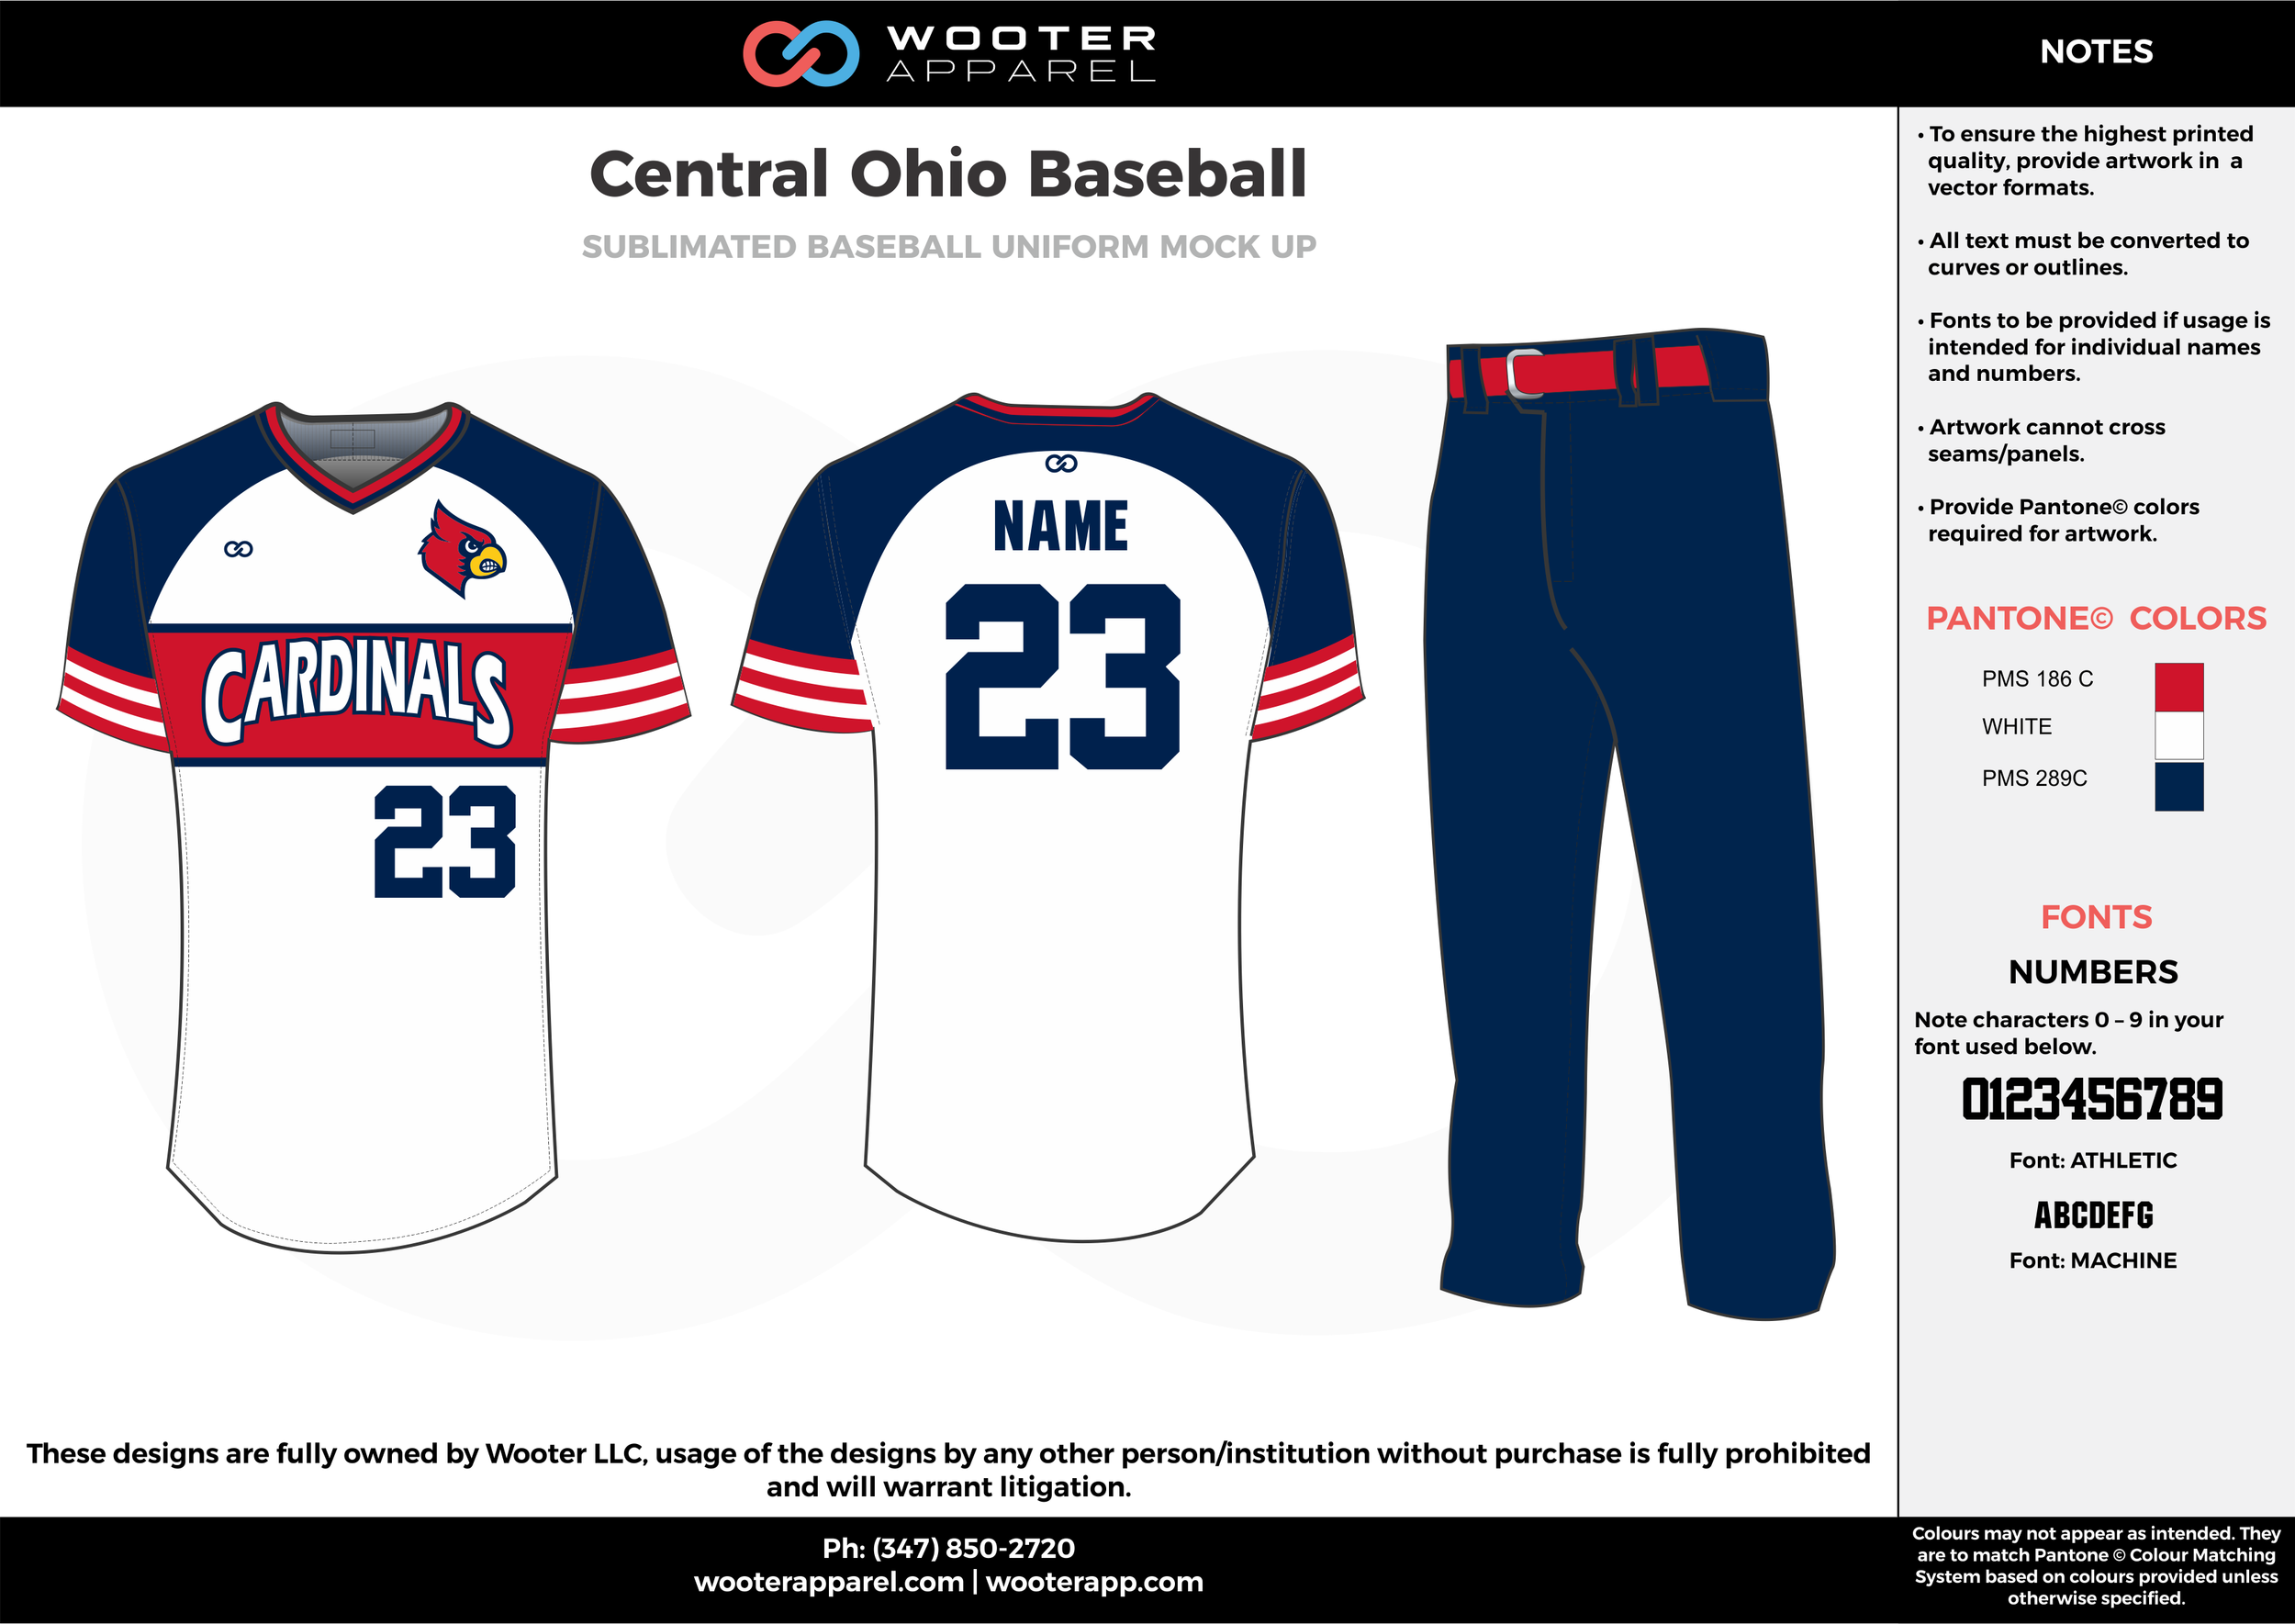 CENTRAL OHIO BASEBALL white dark blue red baseball uniforms jerseys pants